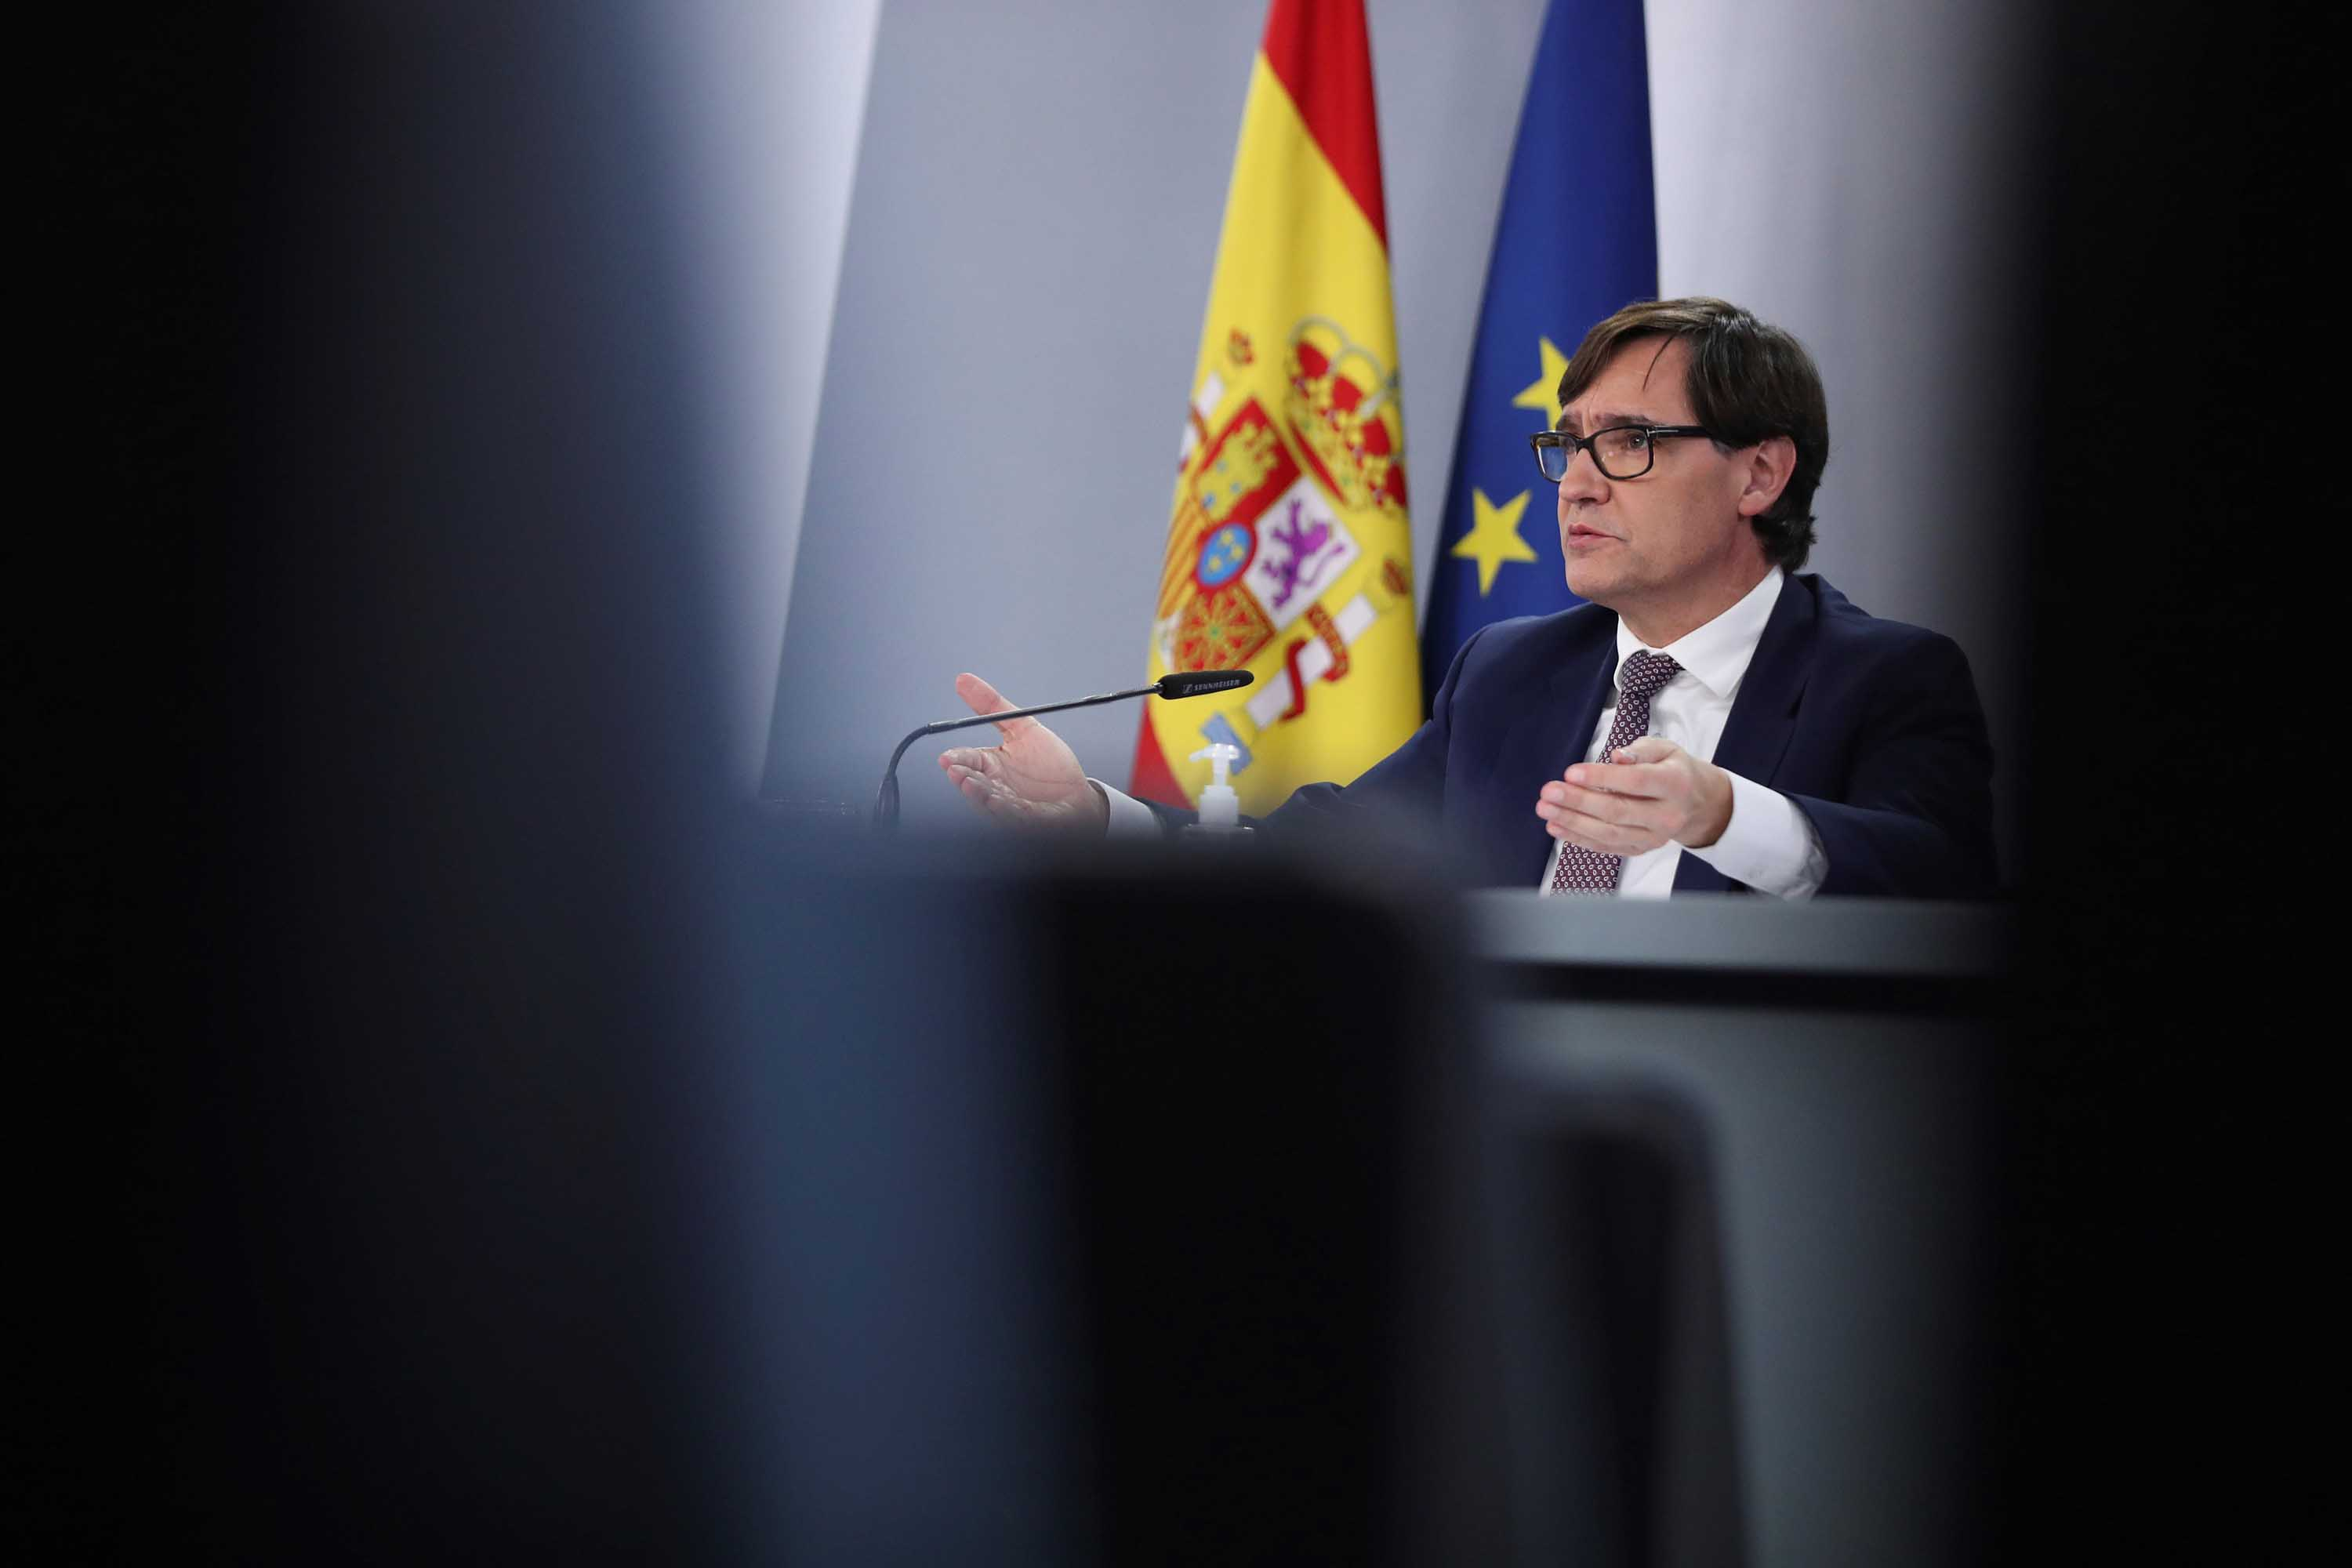 Spanish Health Minister Salvador Illa is seen during a press conference in Madrid, Spain, on December 28.